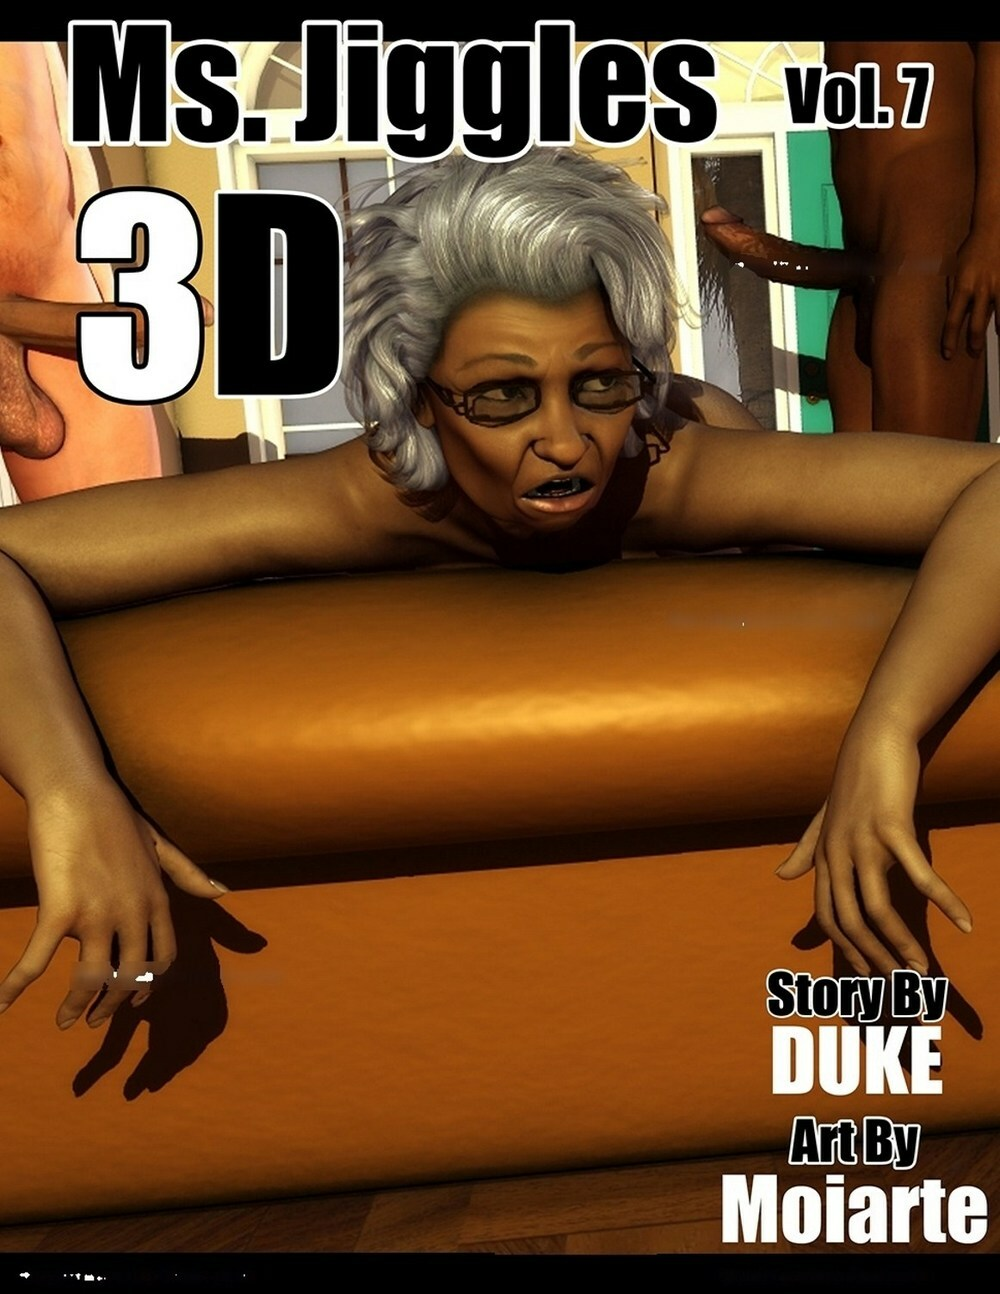 Duke honey Ms Jiggles 3D -7